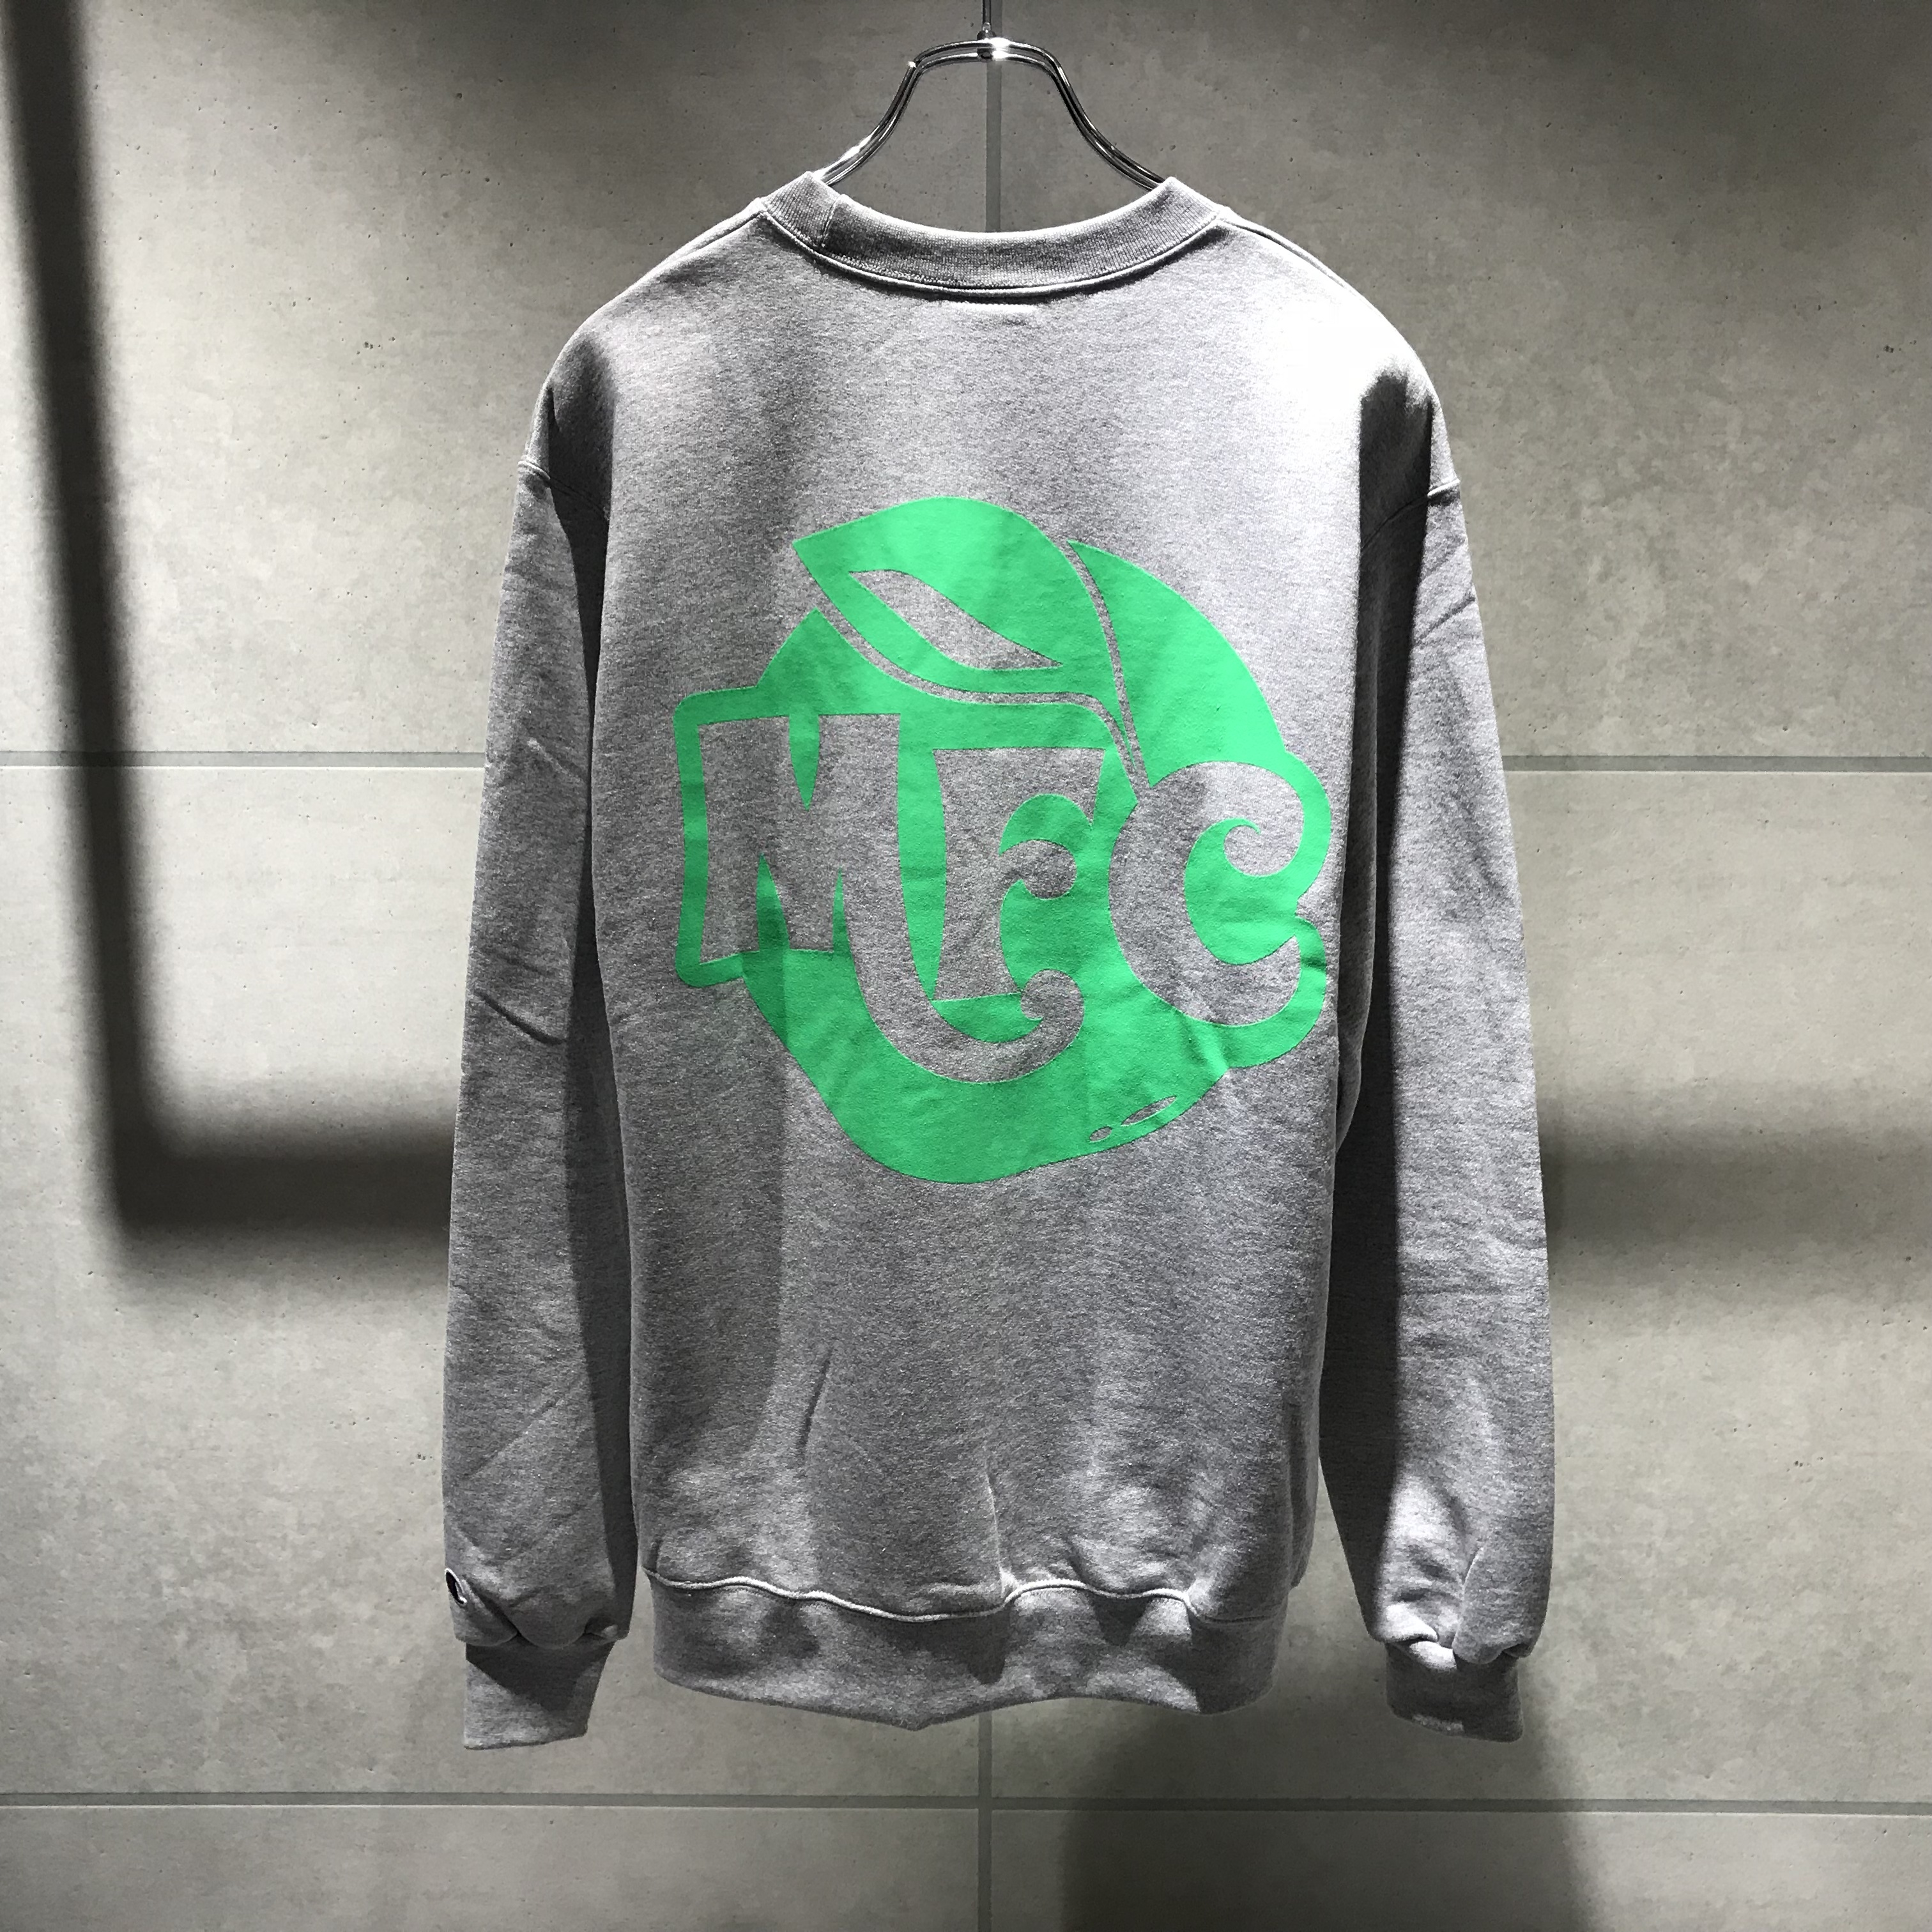 MFC STORE TYPE 8 CREWNECK SWEATSHIRT / LIGHT STEEL x LIME GREEN